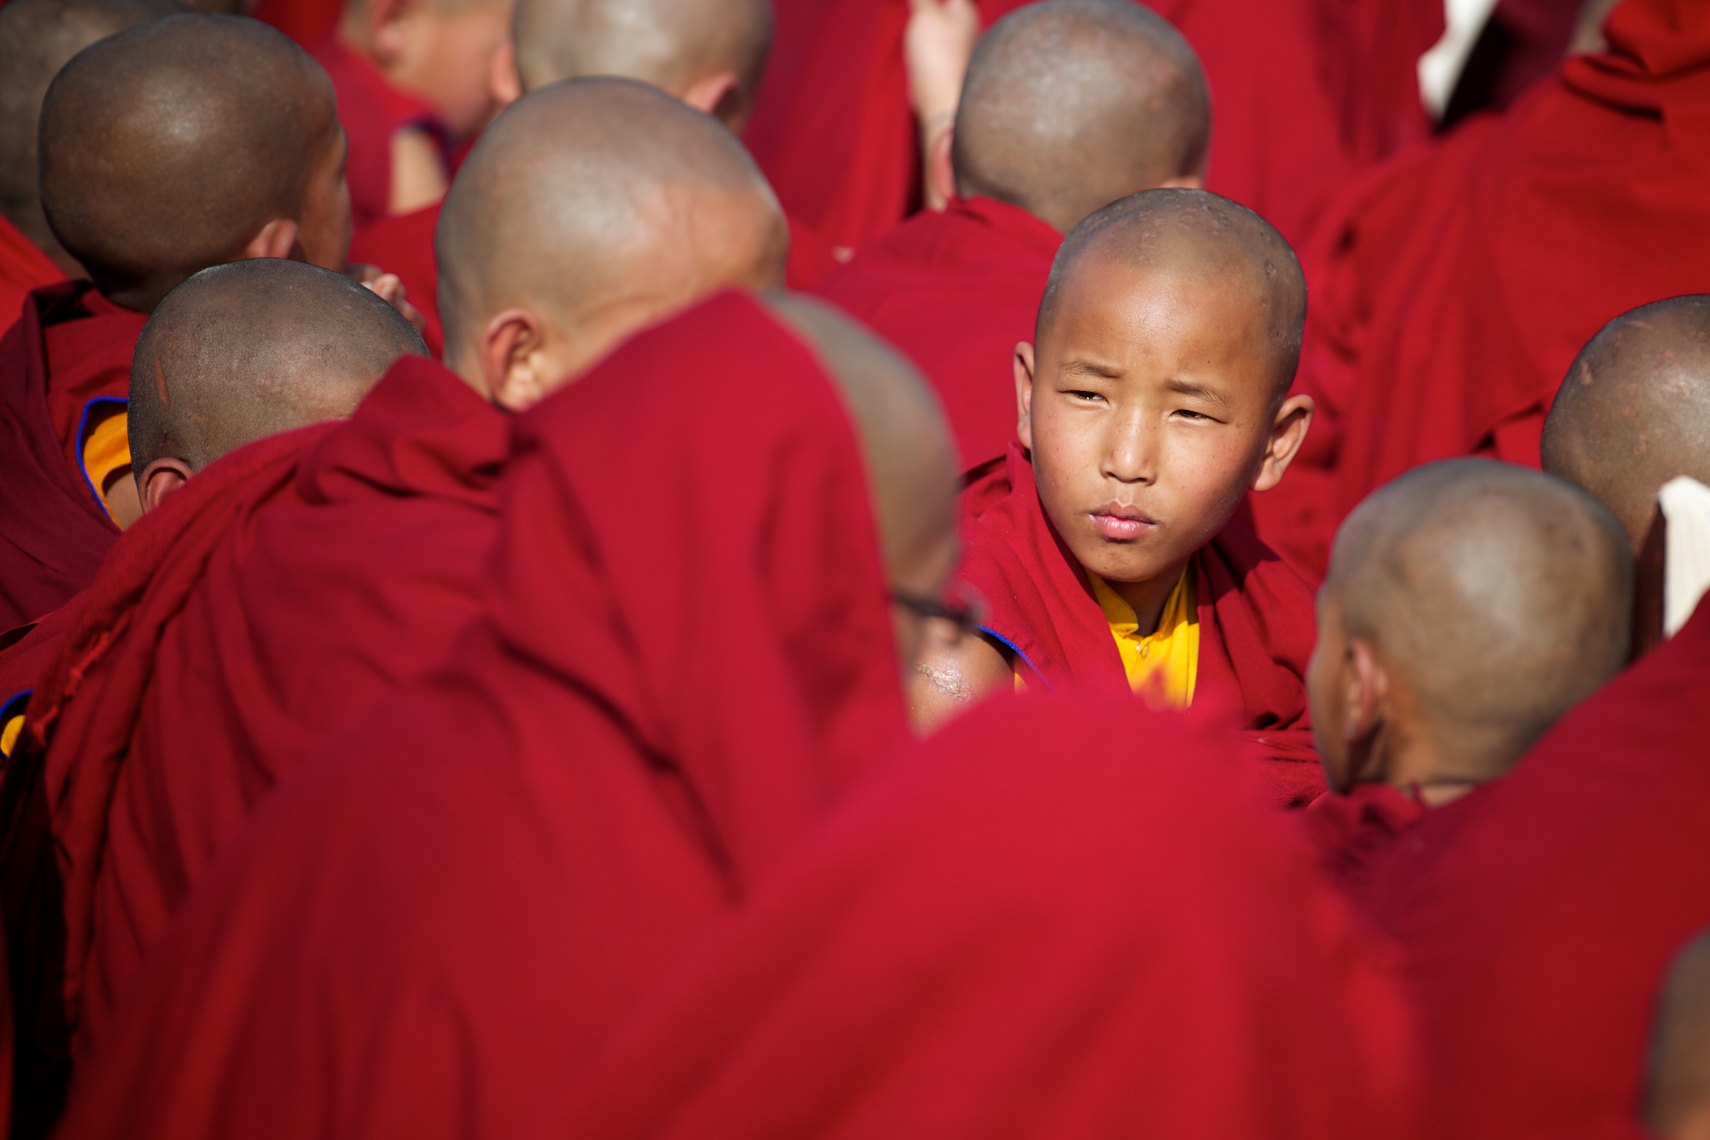 Nepal, Kathmandu, young monks in red